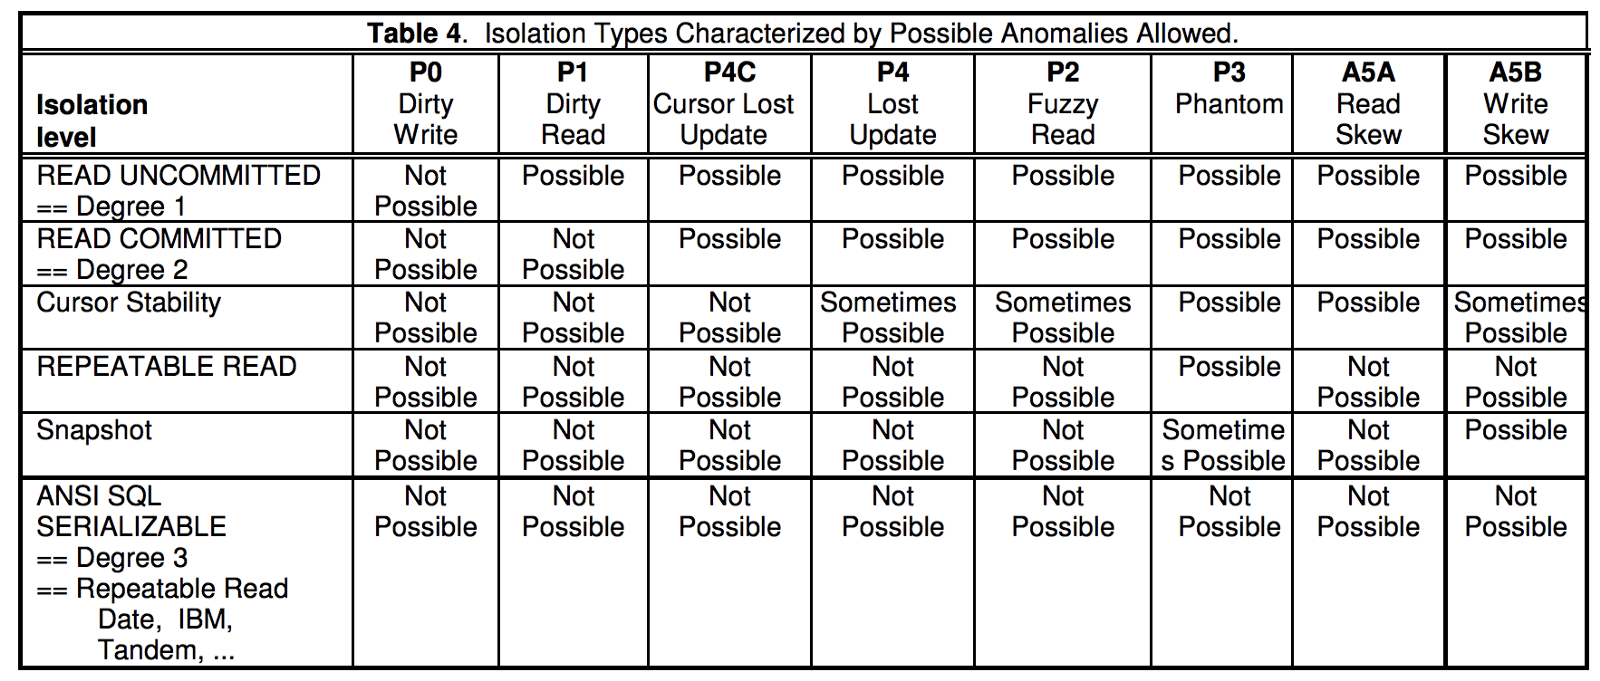 Repeatable Read Is Not Repeatable